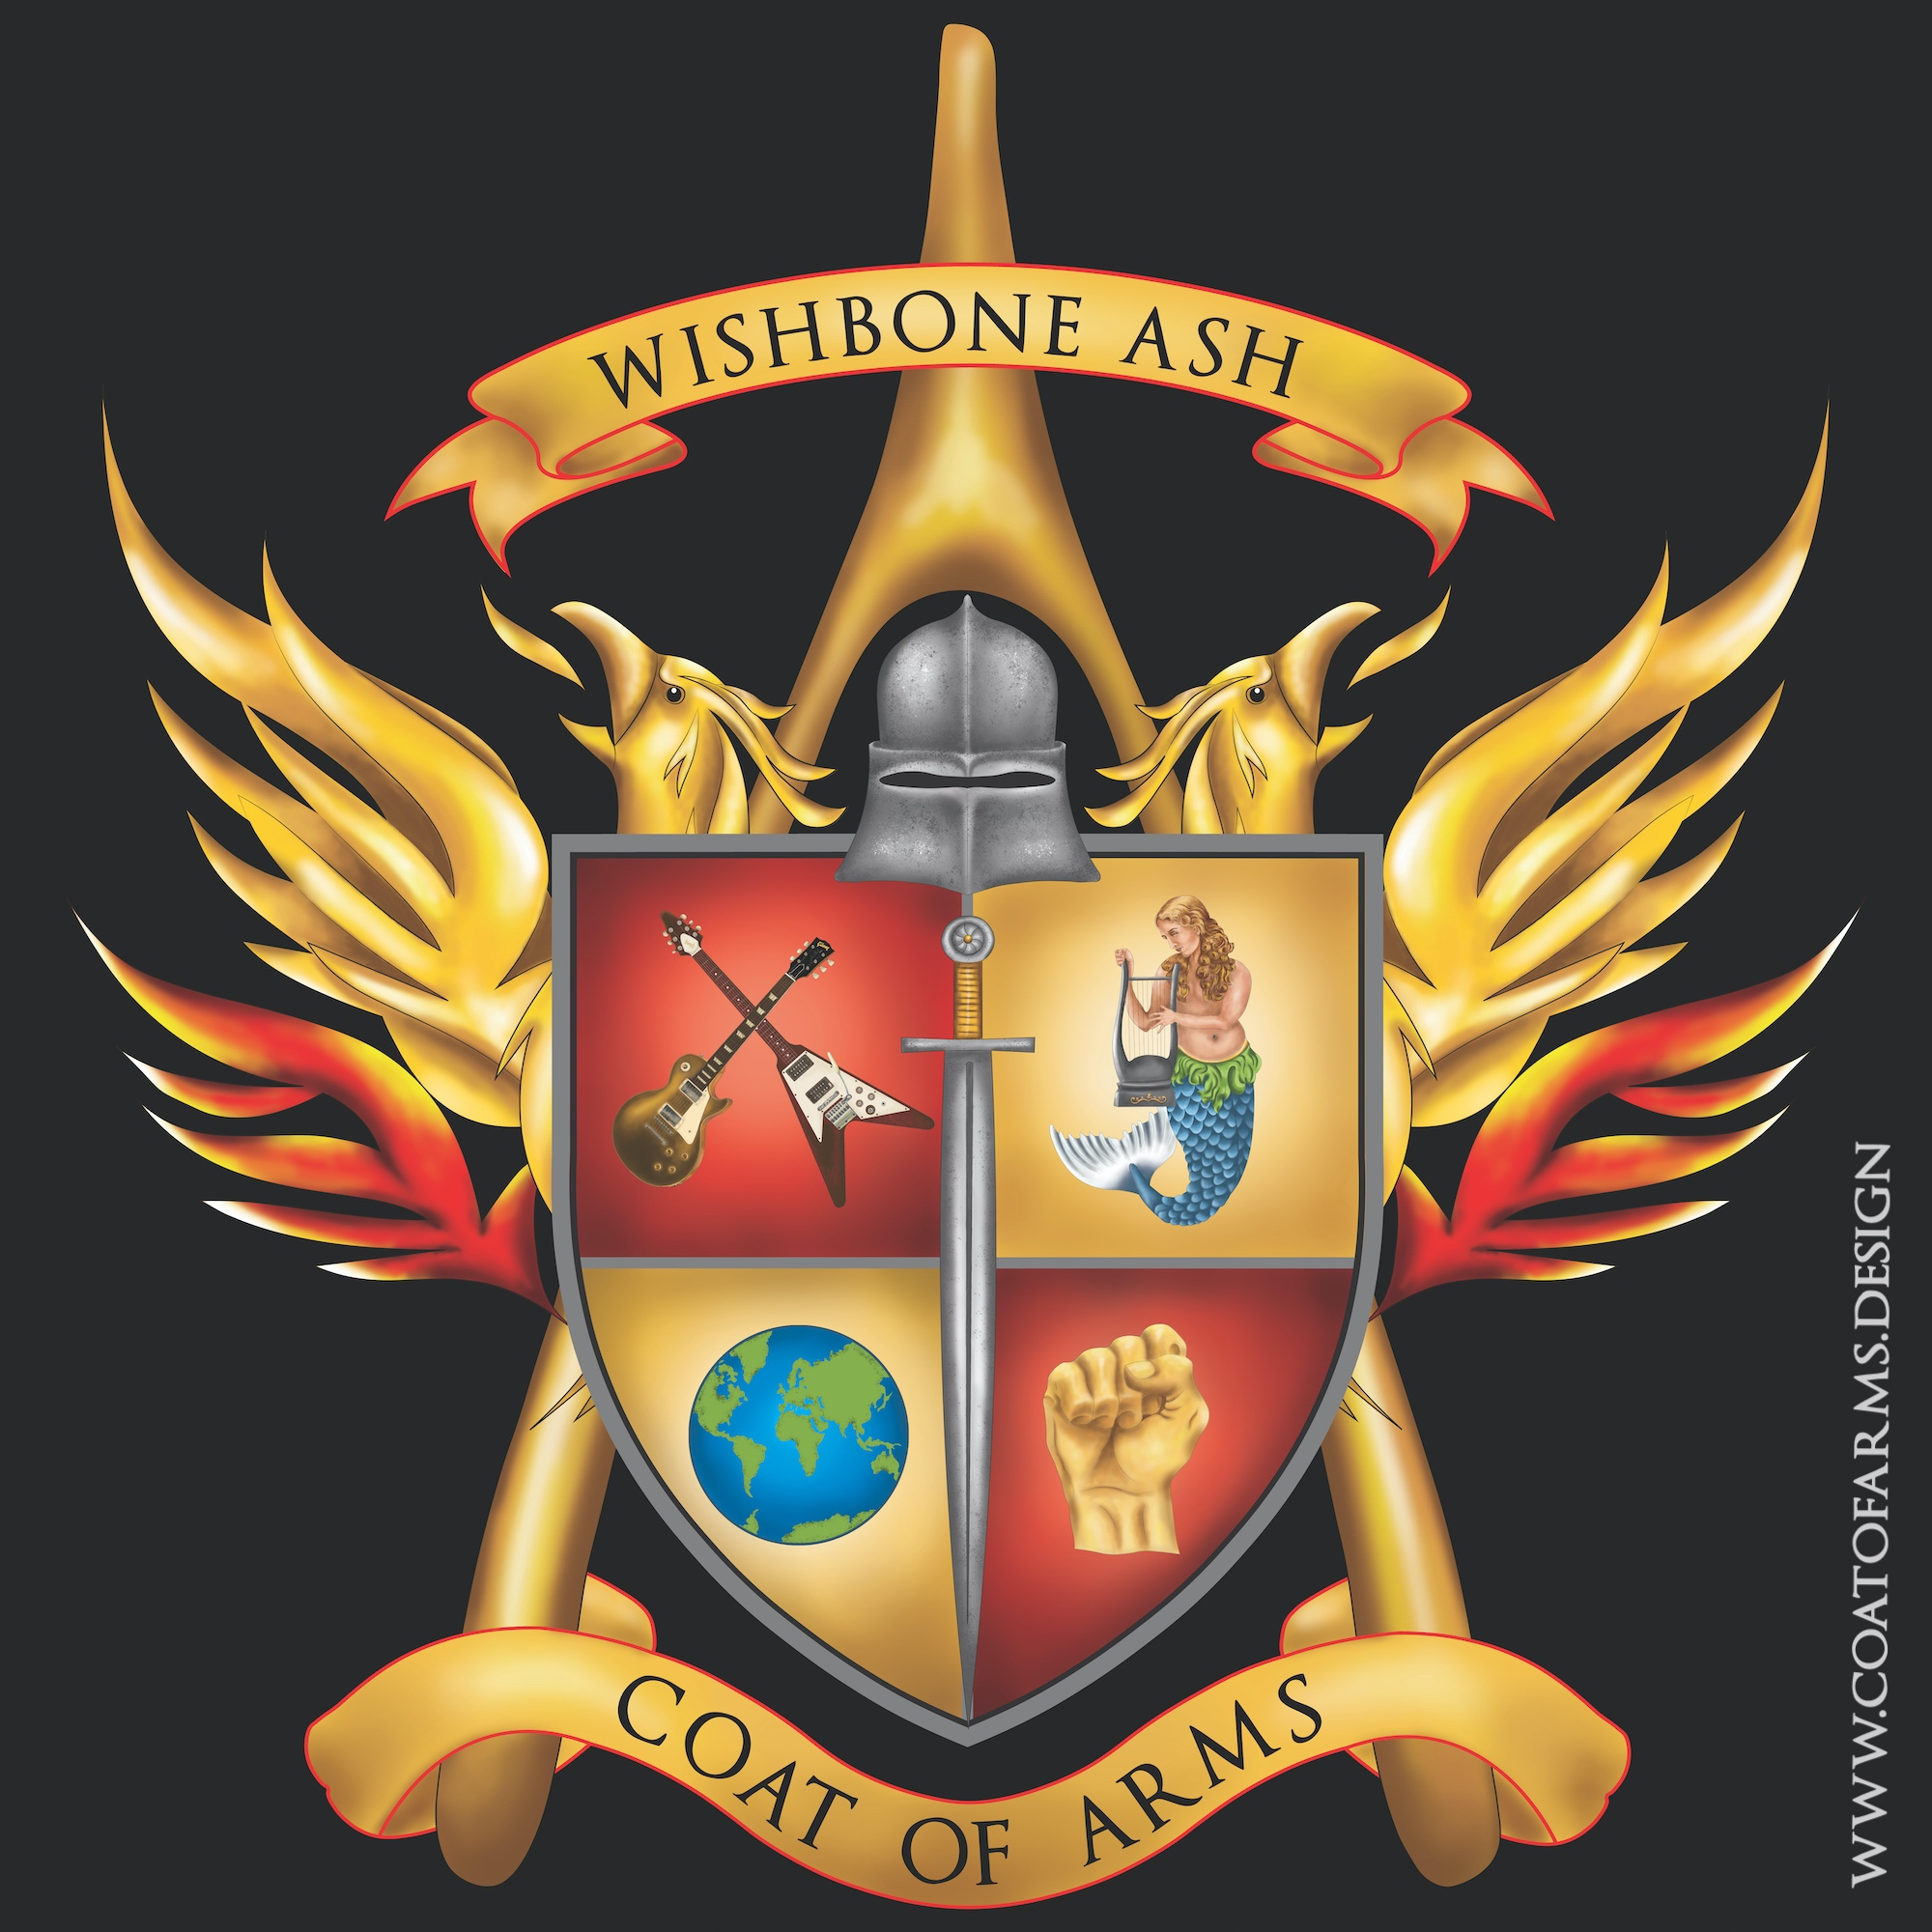 WishboneAsh-coat-of-arms-by-author-regal-coat-of-arms-big